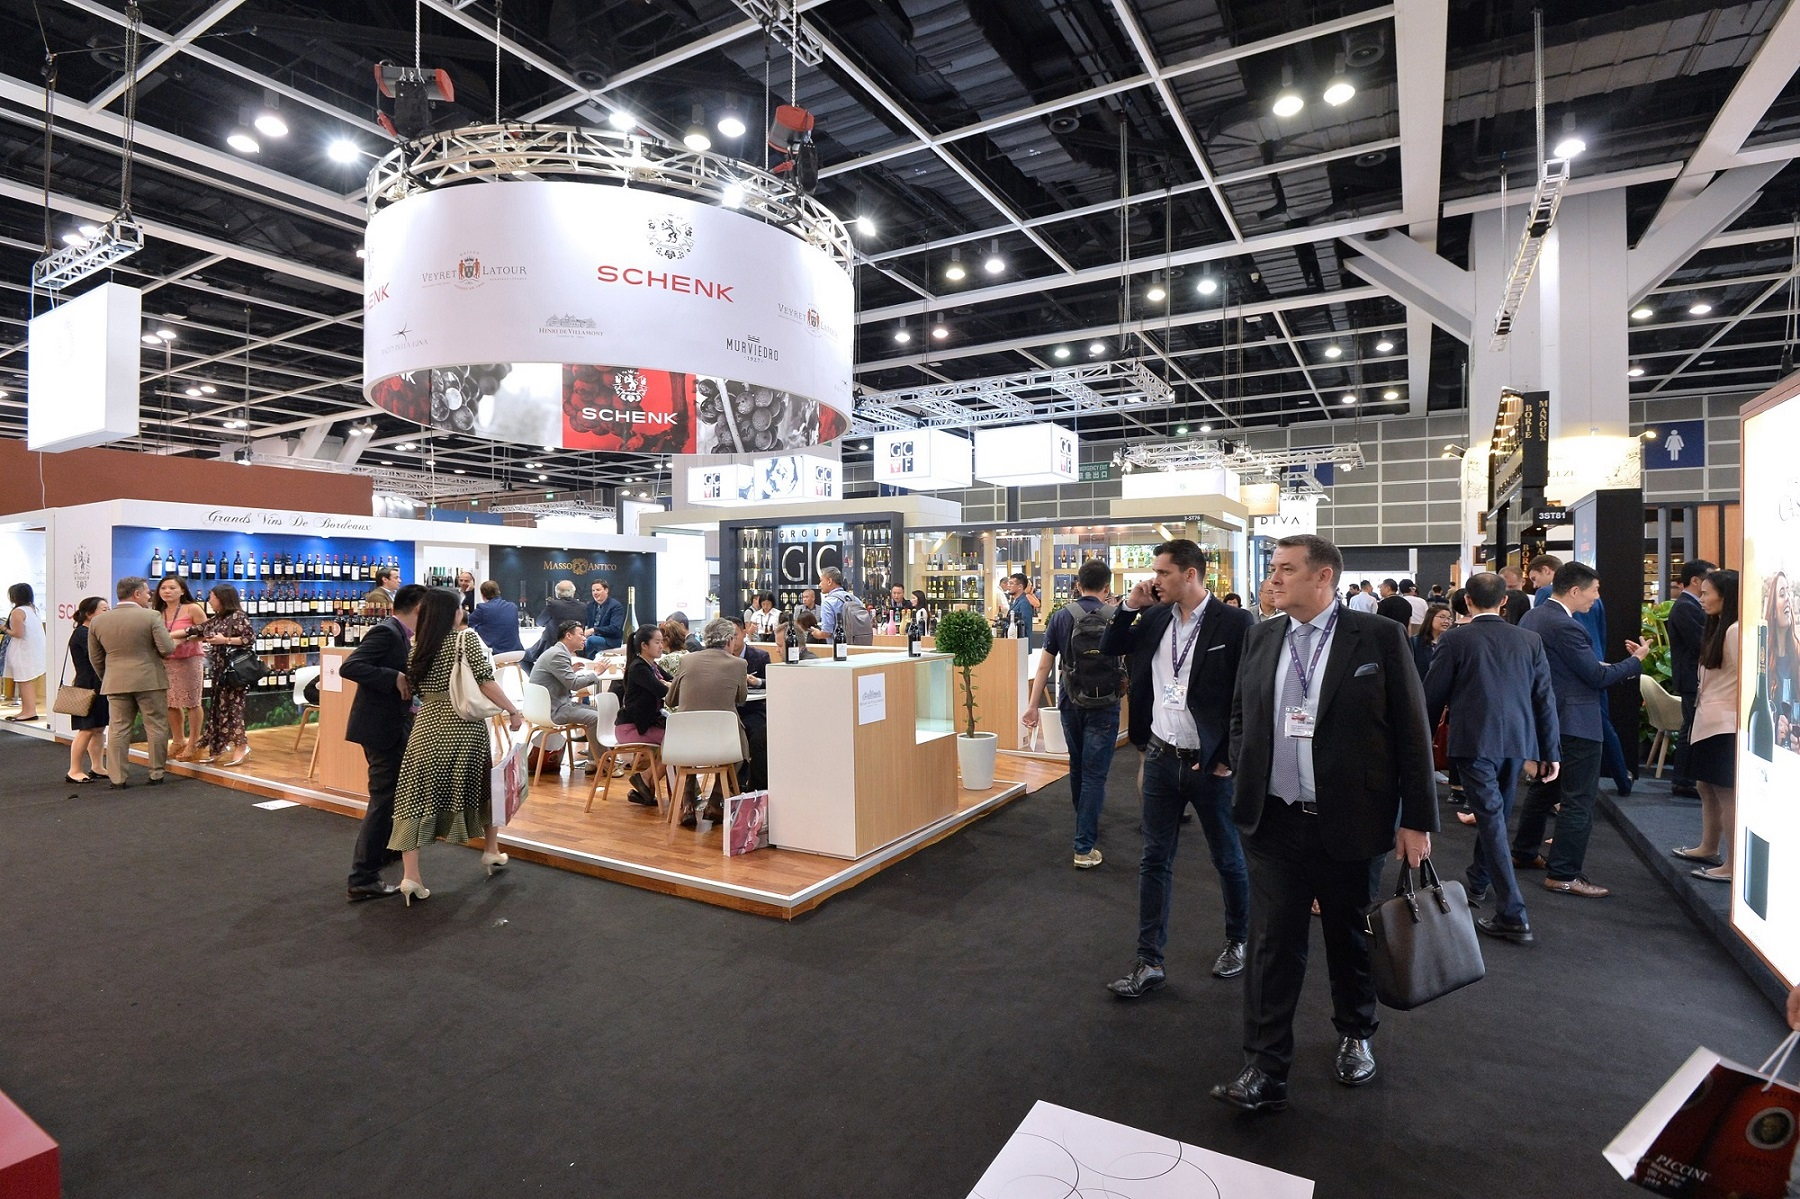 Vinexpo Hong Kong, one of the HKCEC's recurrent exhibitions, celebrated its presence in Hong Kong and the HKCEC for 20 years.